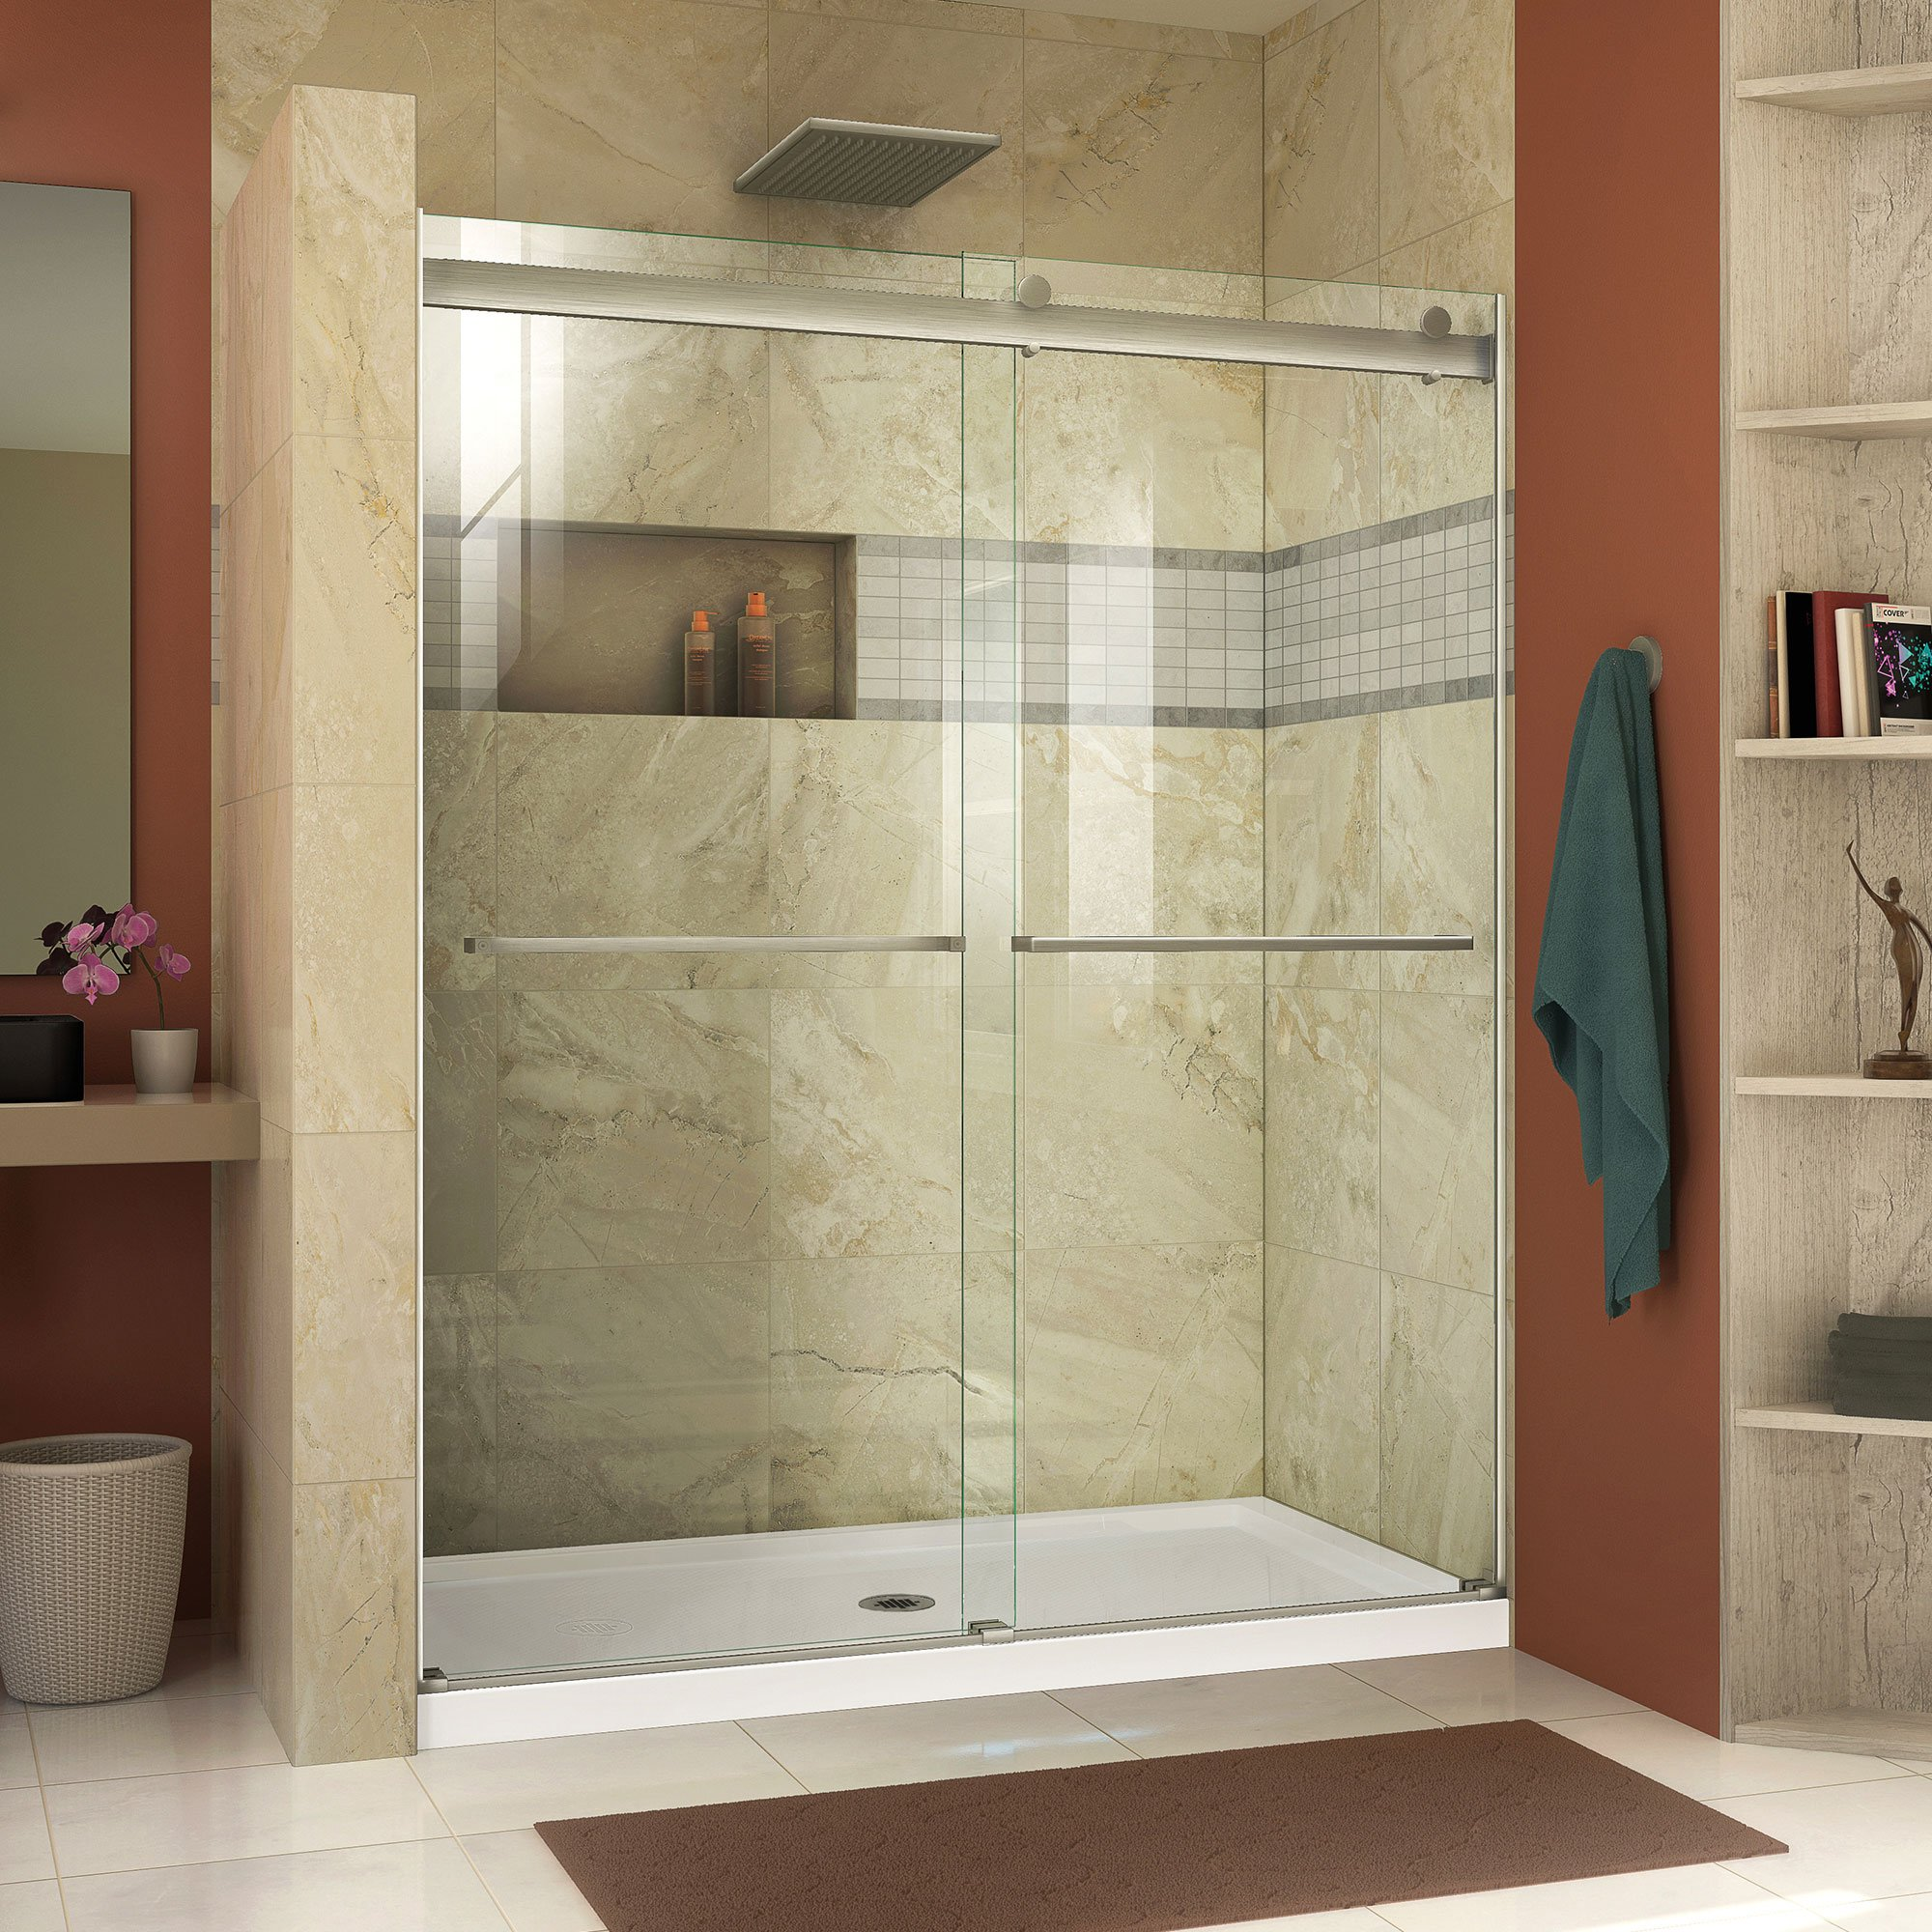 DreamLine SHDR-6360760-04  Essence 56 to 60 in. Frameless Bypass Shower Door in Brushed Nickel Finish by DreamLine (Image #1)